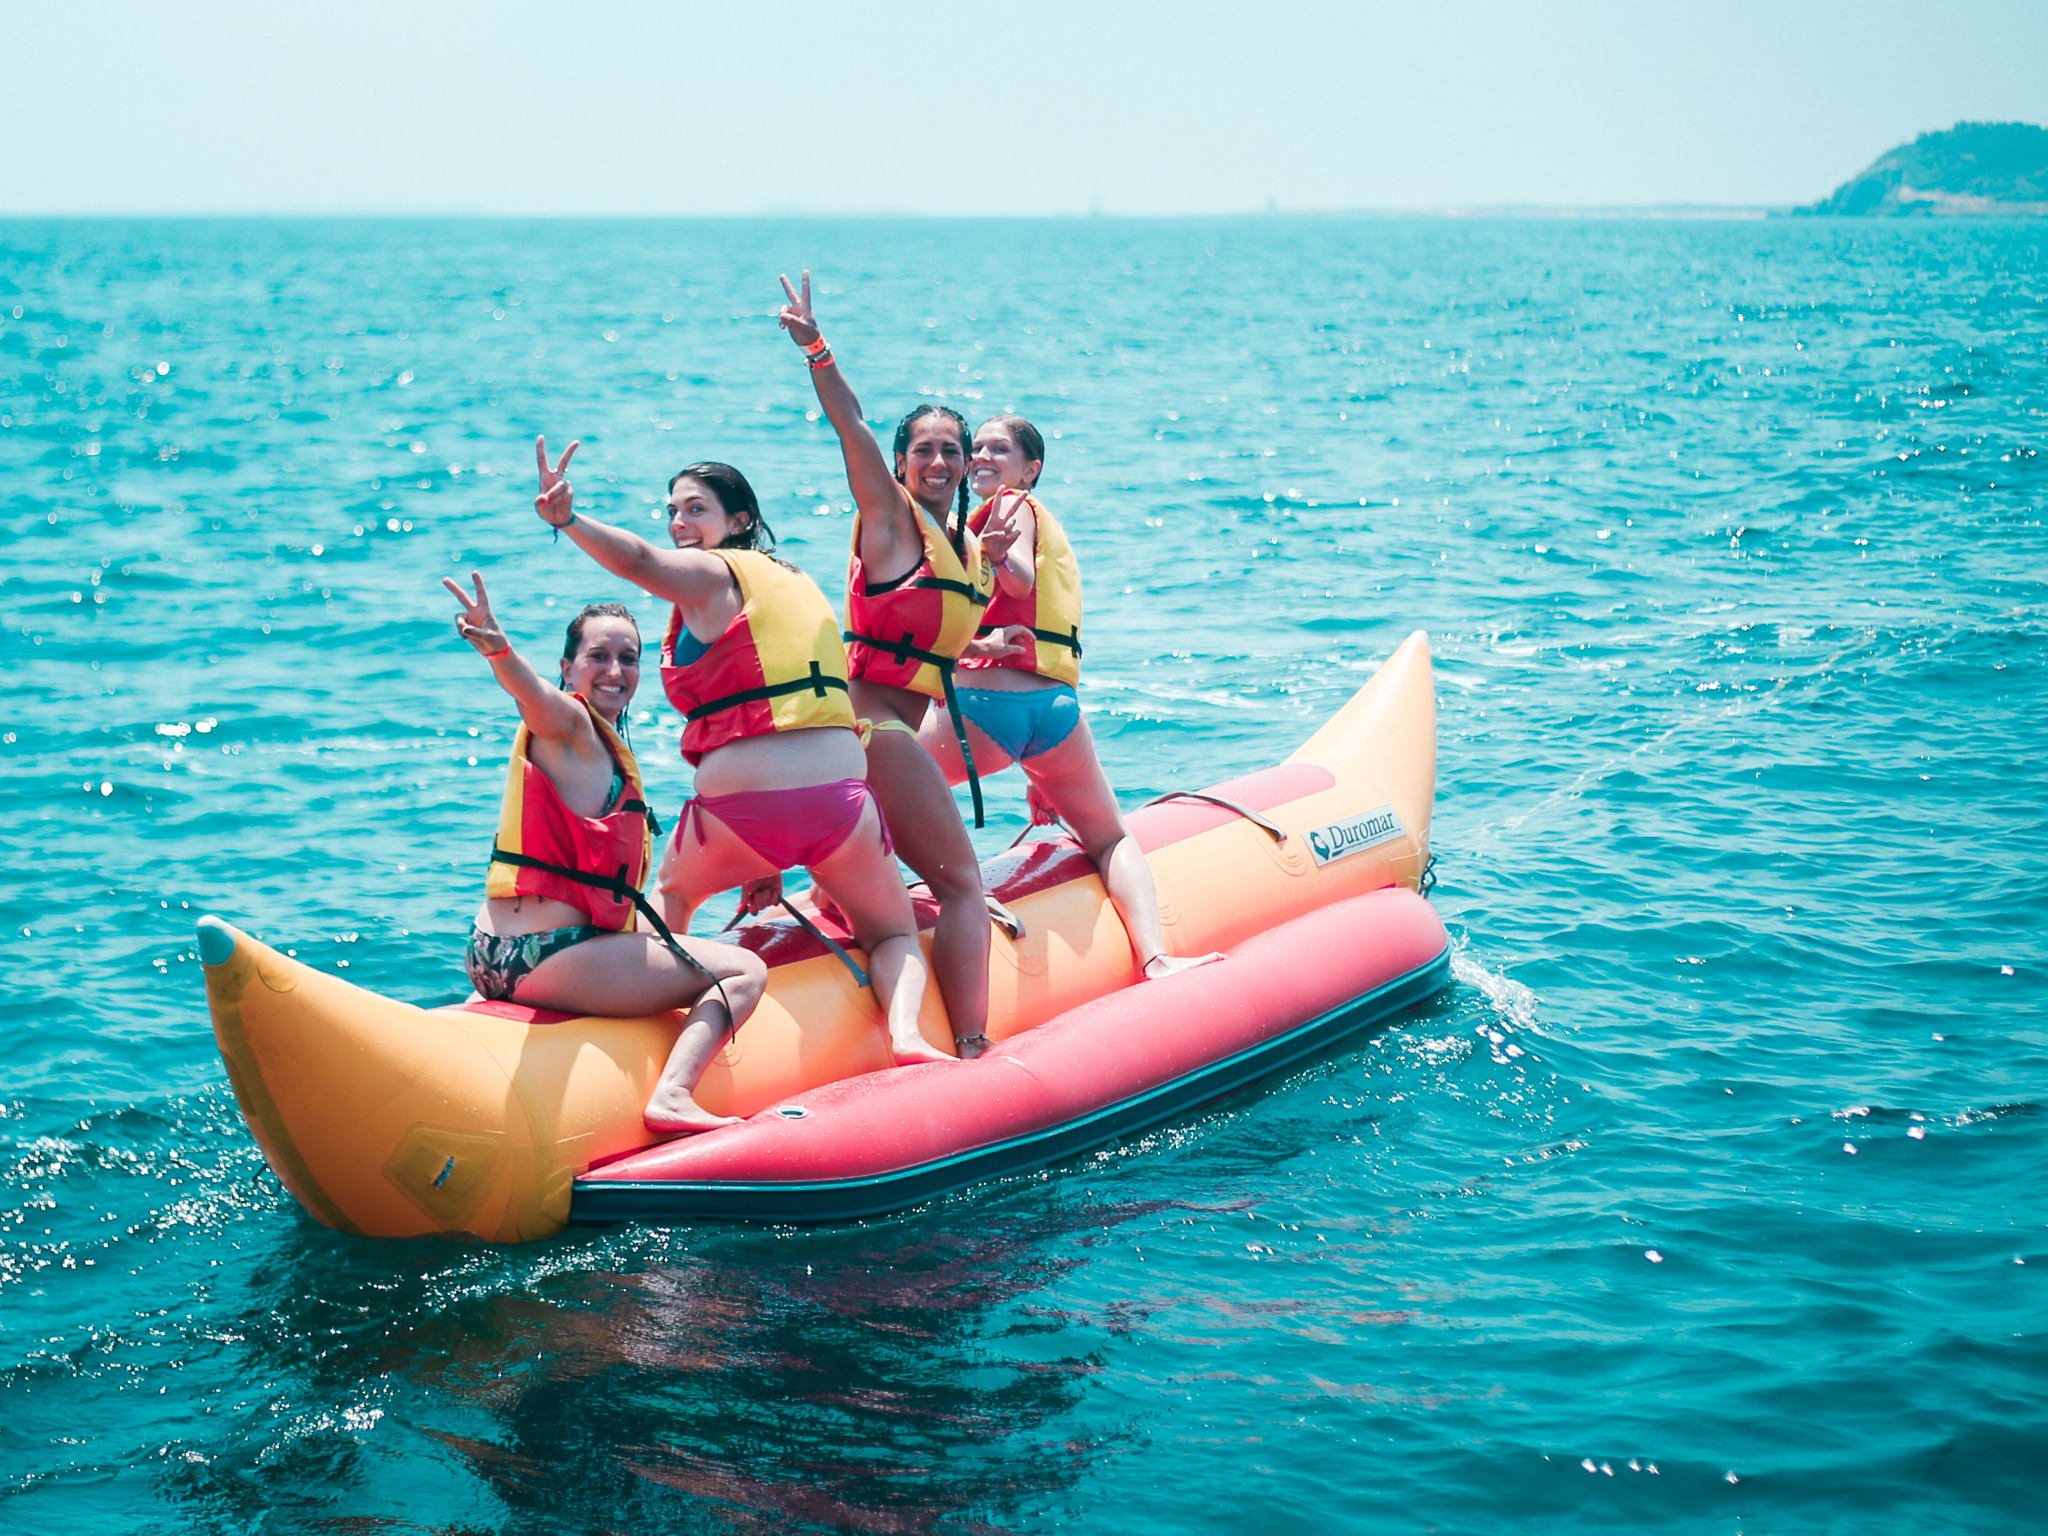 Water sports and fun in Ibiza boat party